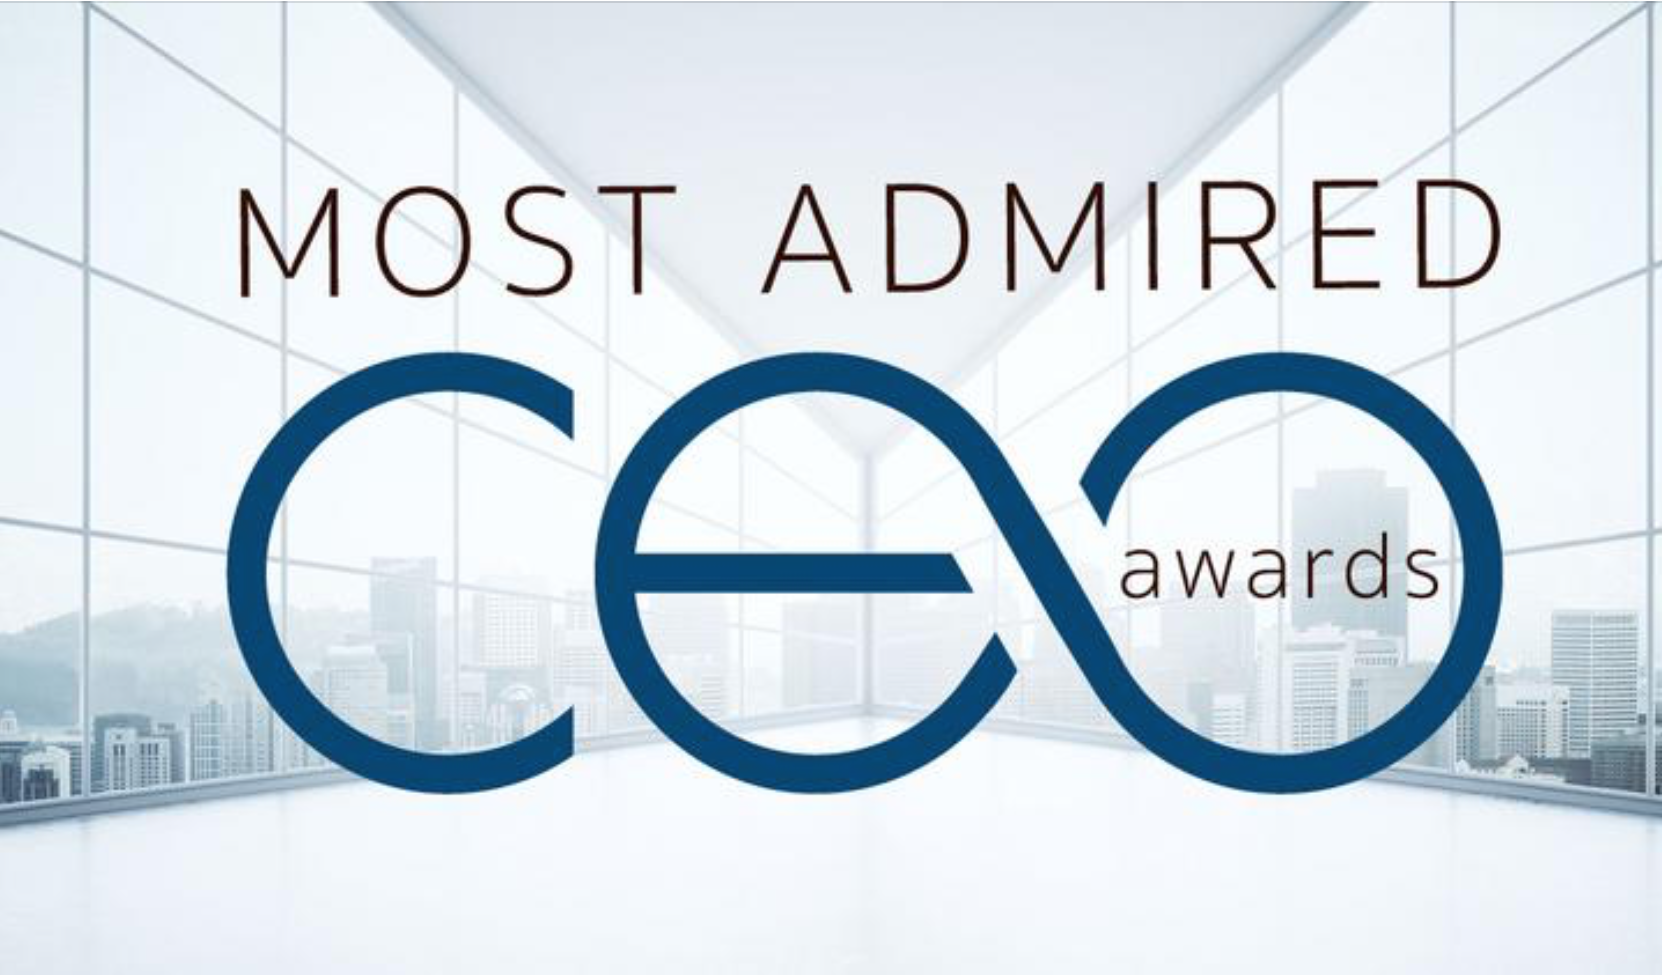 most-admired-ceo-2019.png